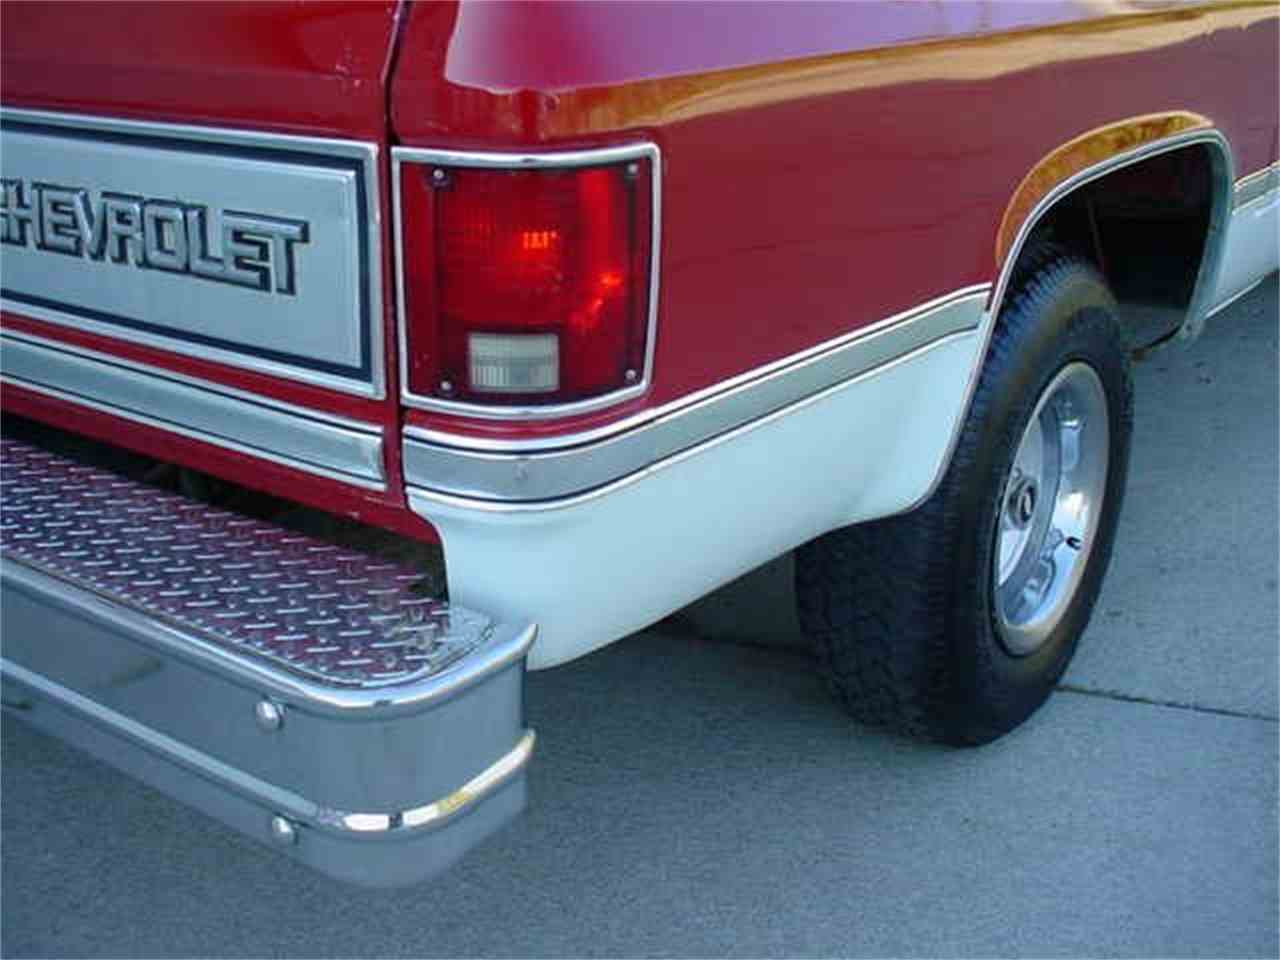 Large Picture of 1986 Chevrolet Silverado - $10,950.00 Offered by Ultra Automotive - M60C